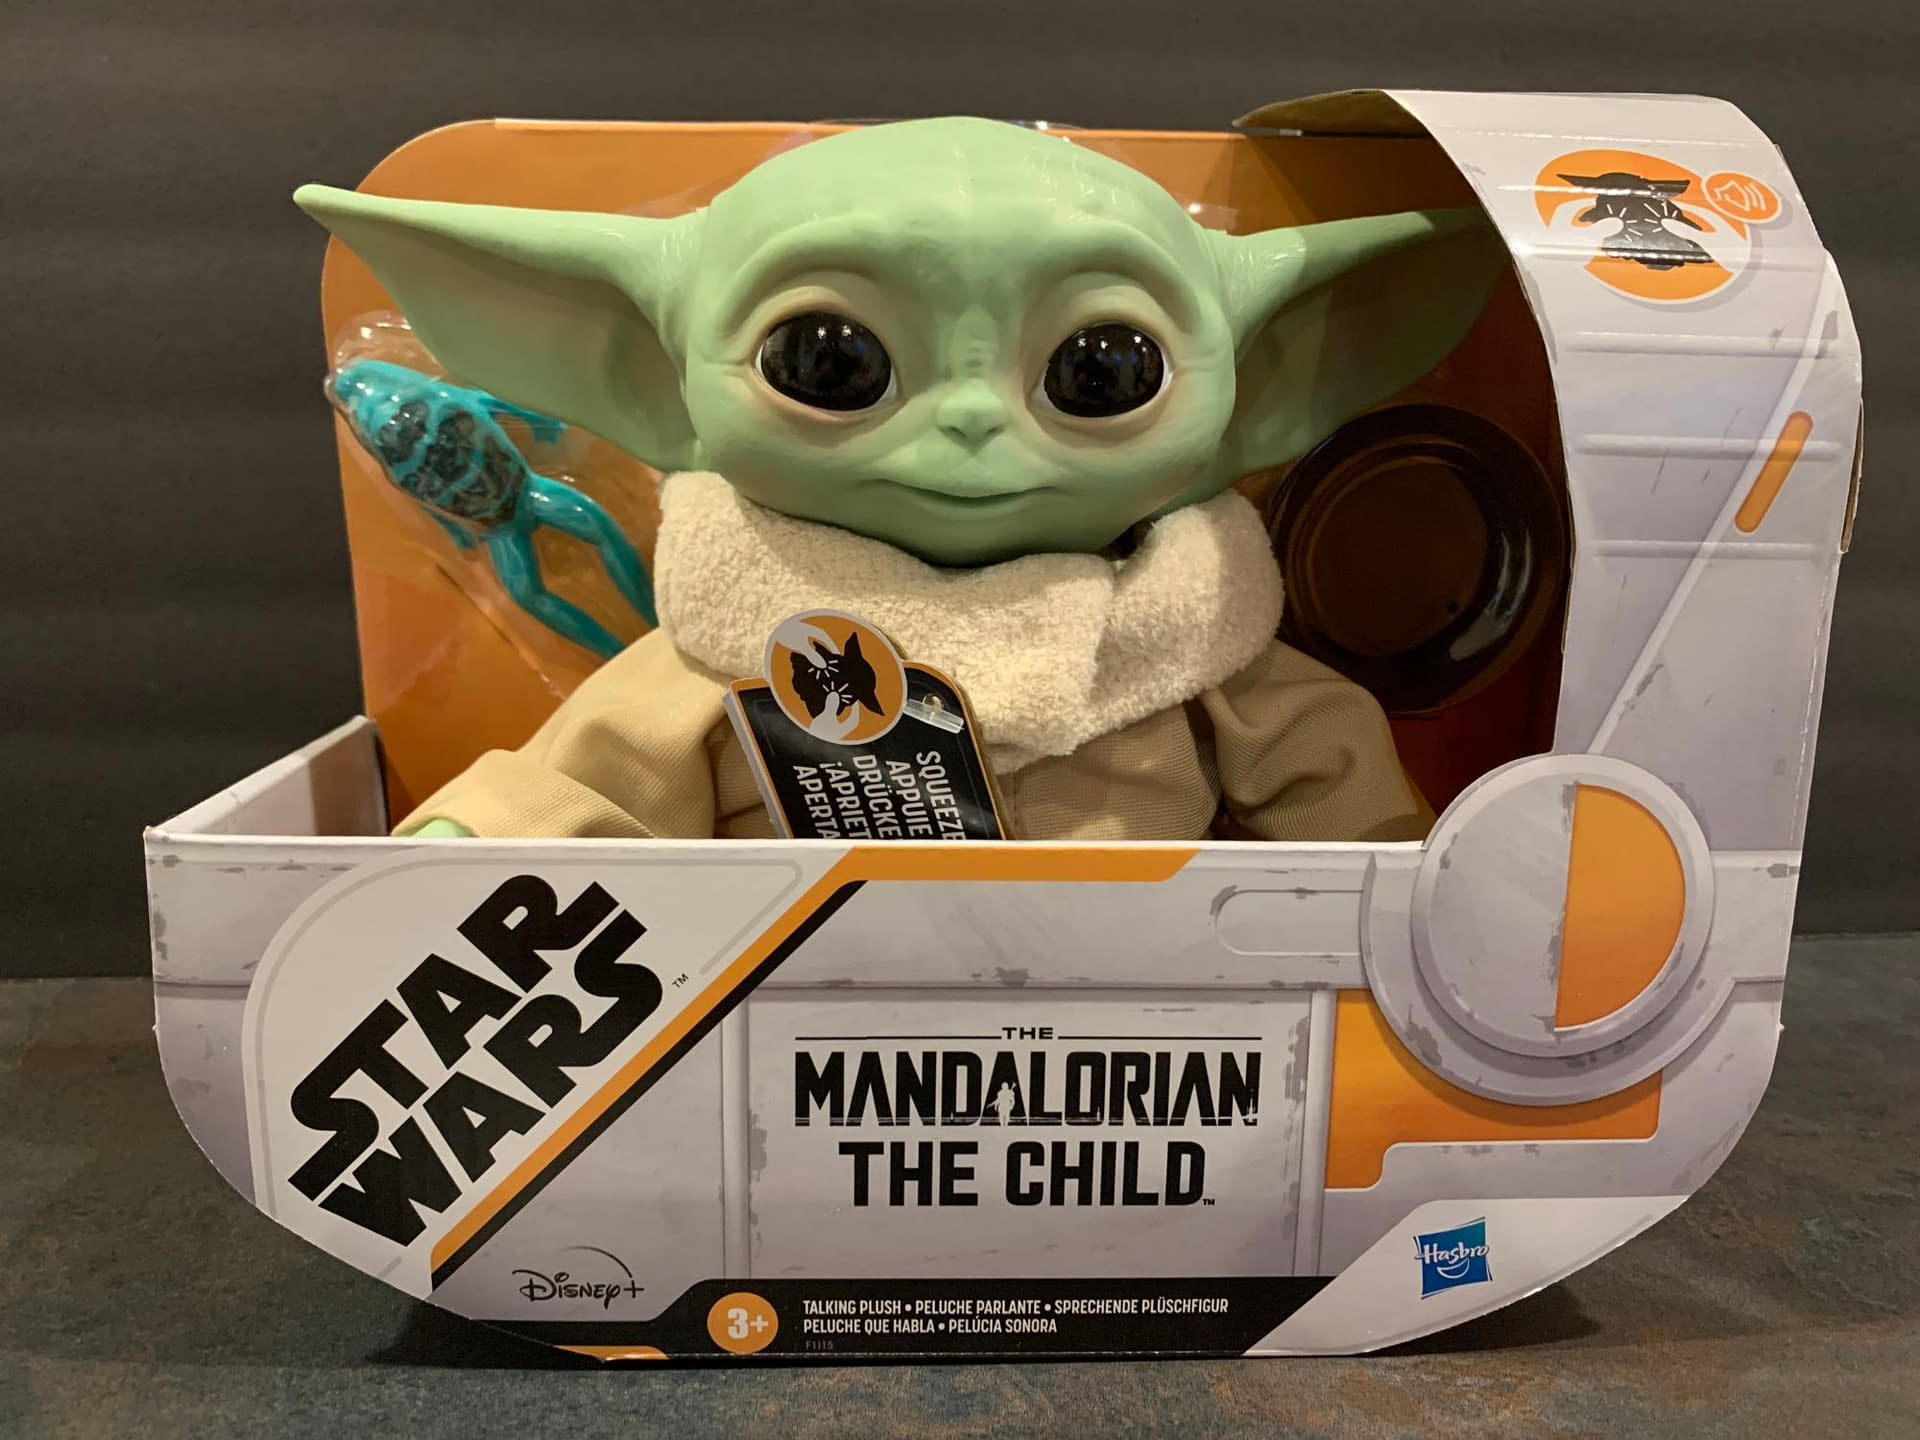 Unboxing A Huge Box Of The Child Mandalorian Toys From Hasbro